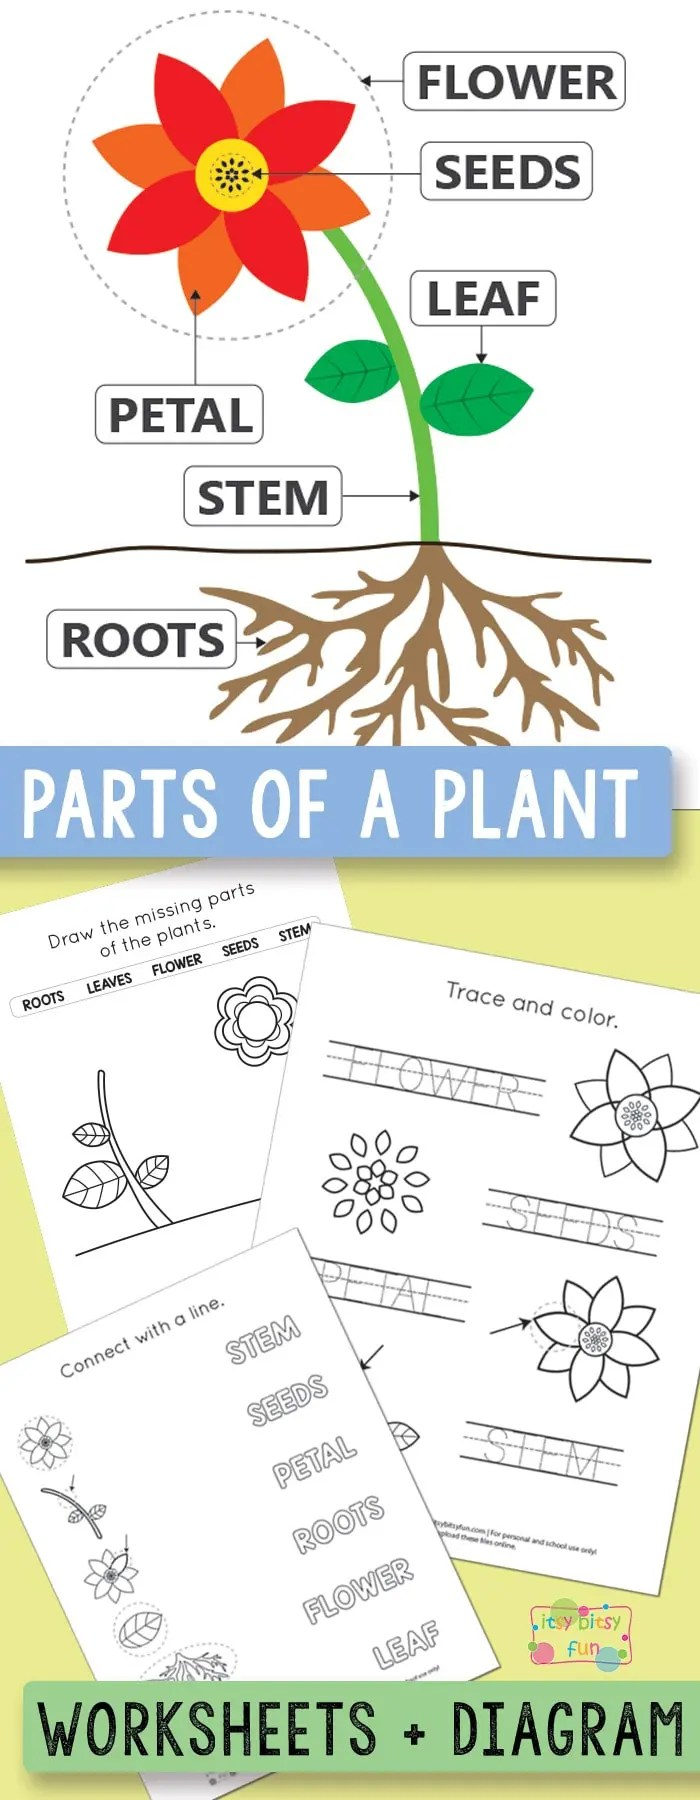 medium resolution of Free Printable Parts of a Plant Worksheets - itsybitsyfun.com